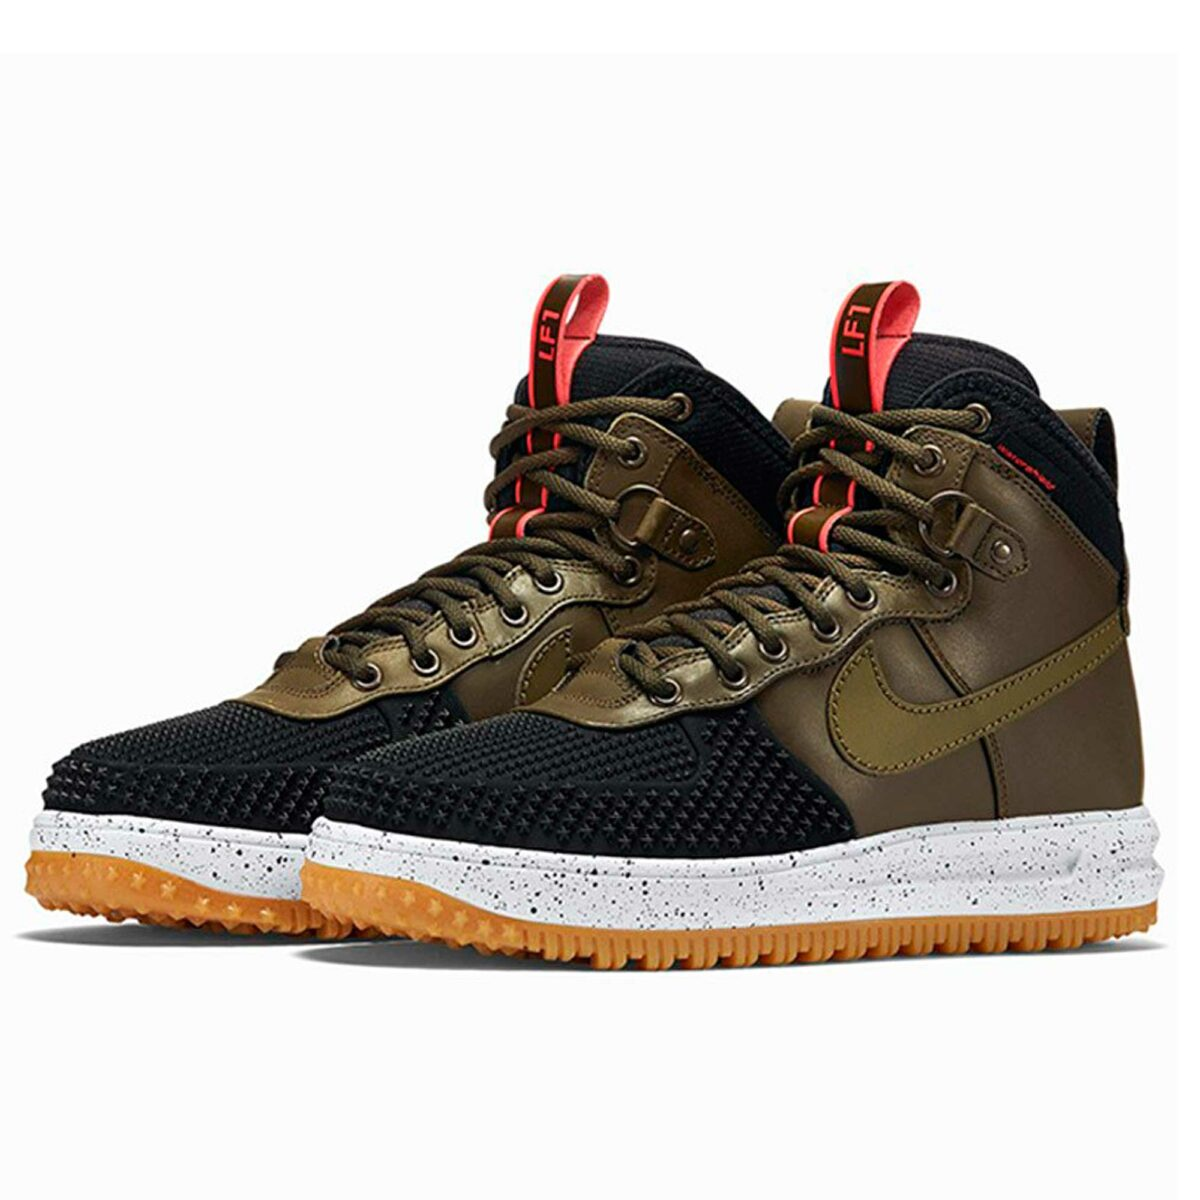 nike lunar force 1 one duckboot 805899-001 купить